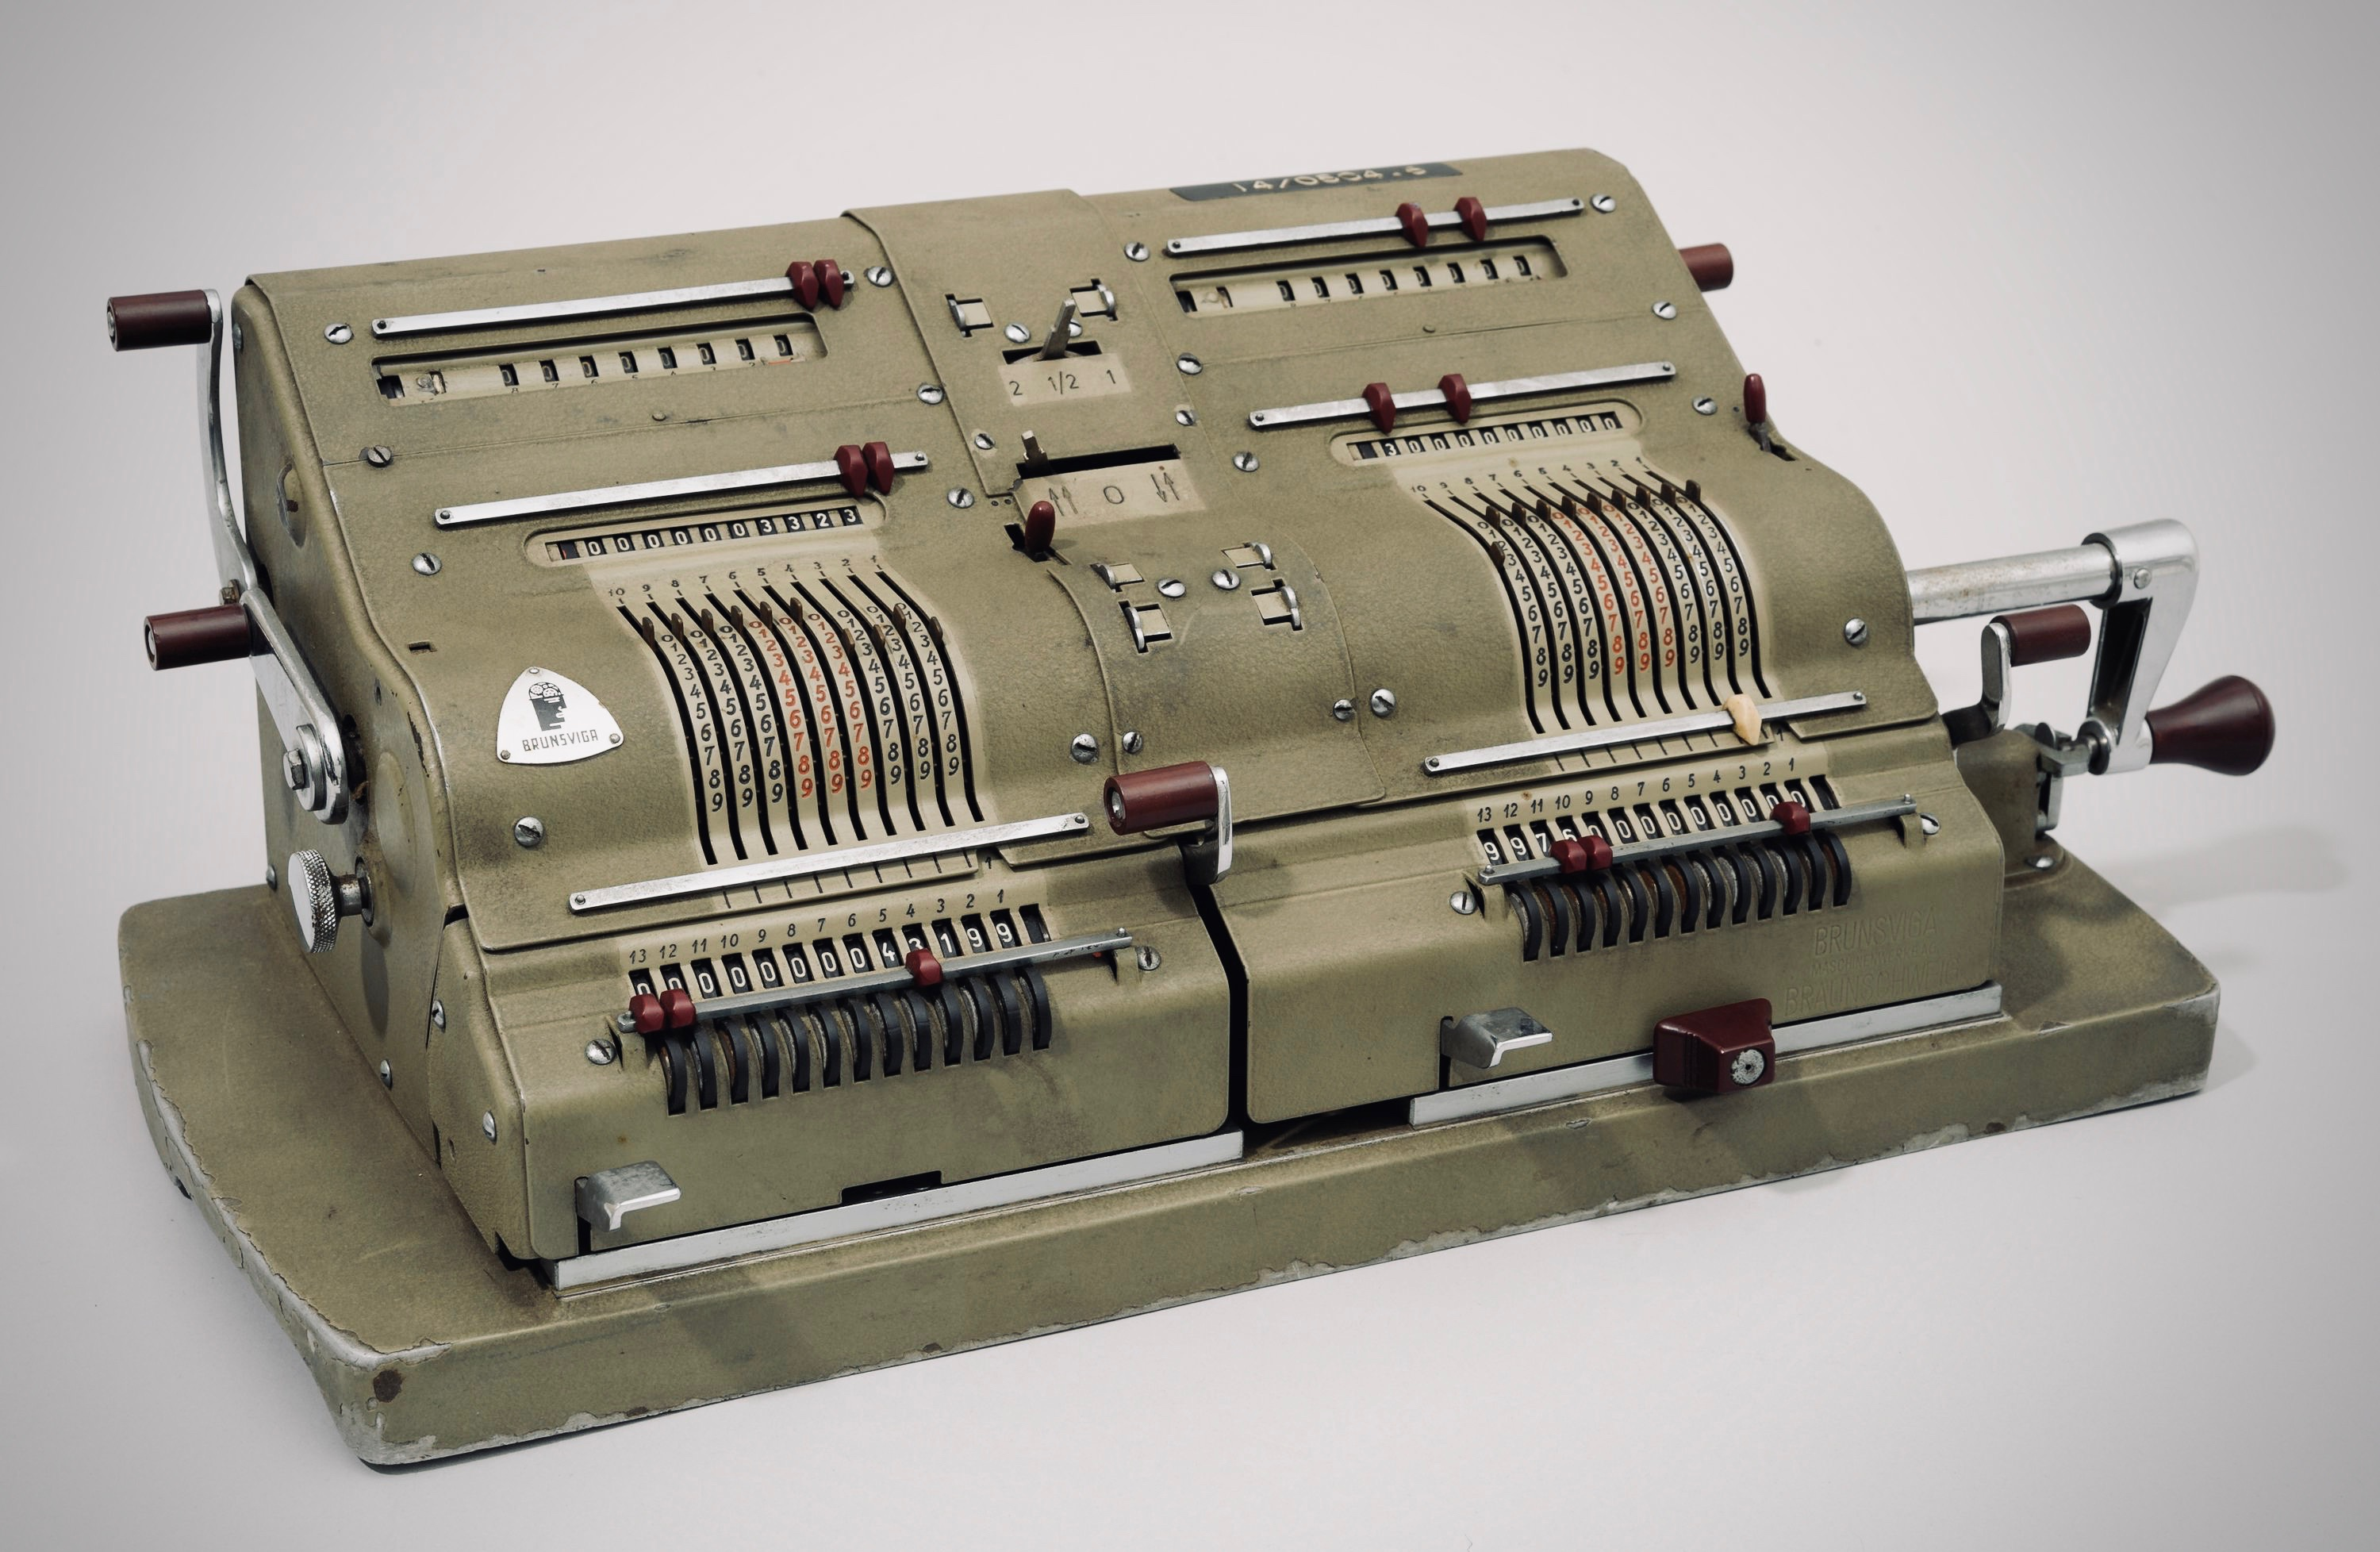 Brunsviga double calculator from the 1950s